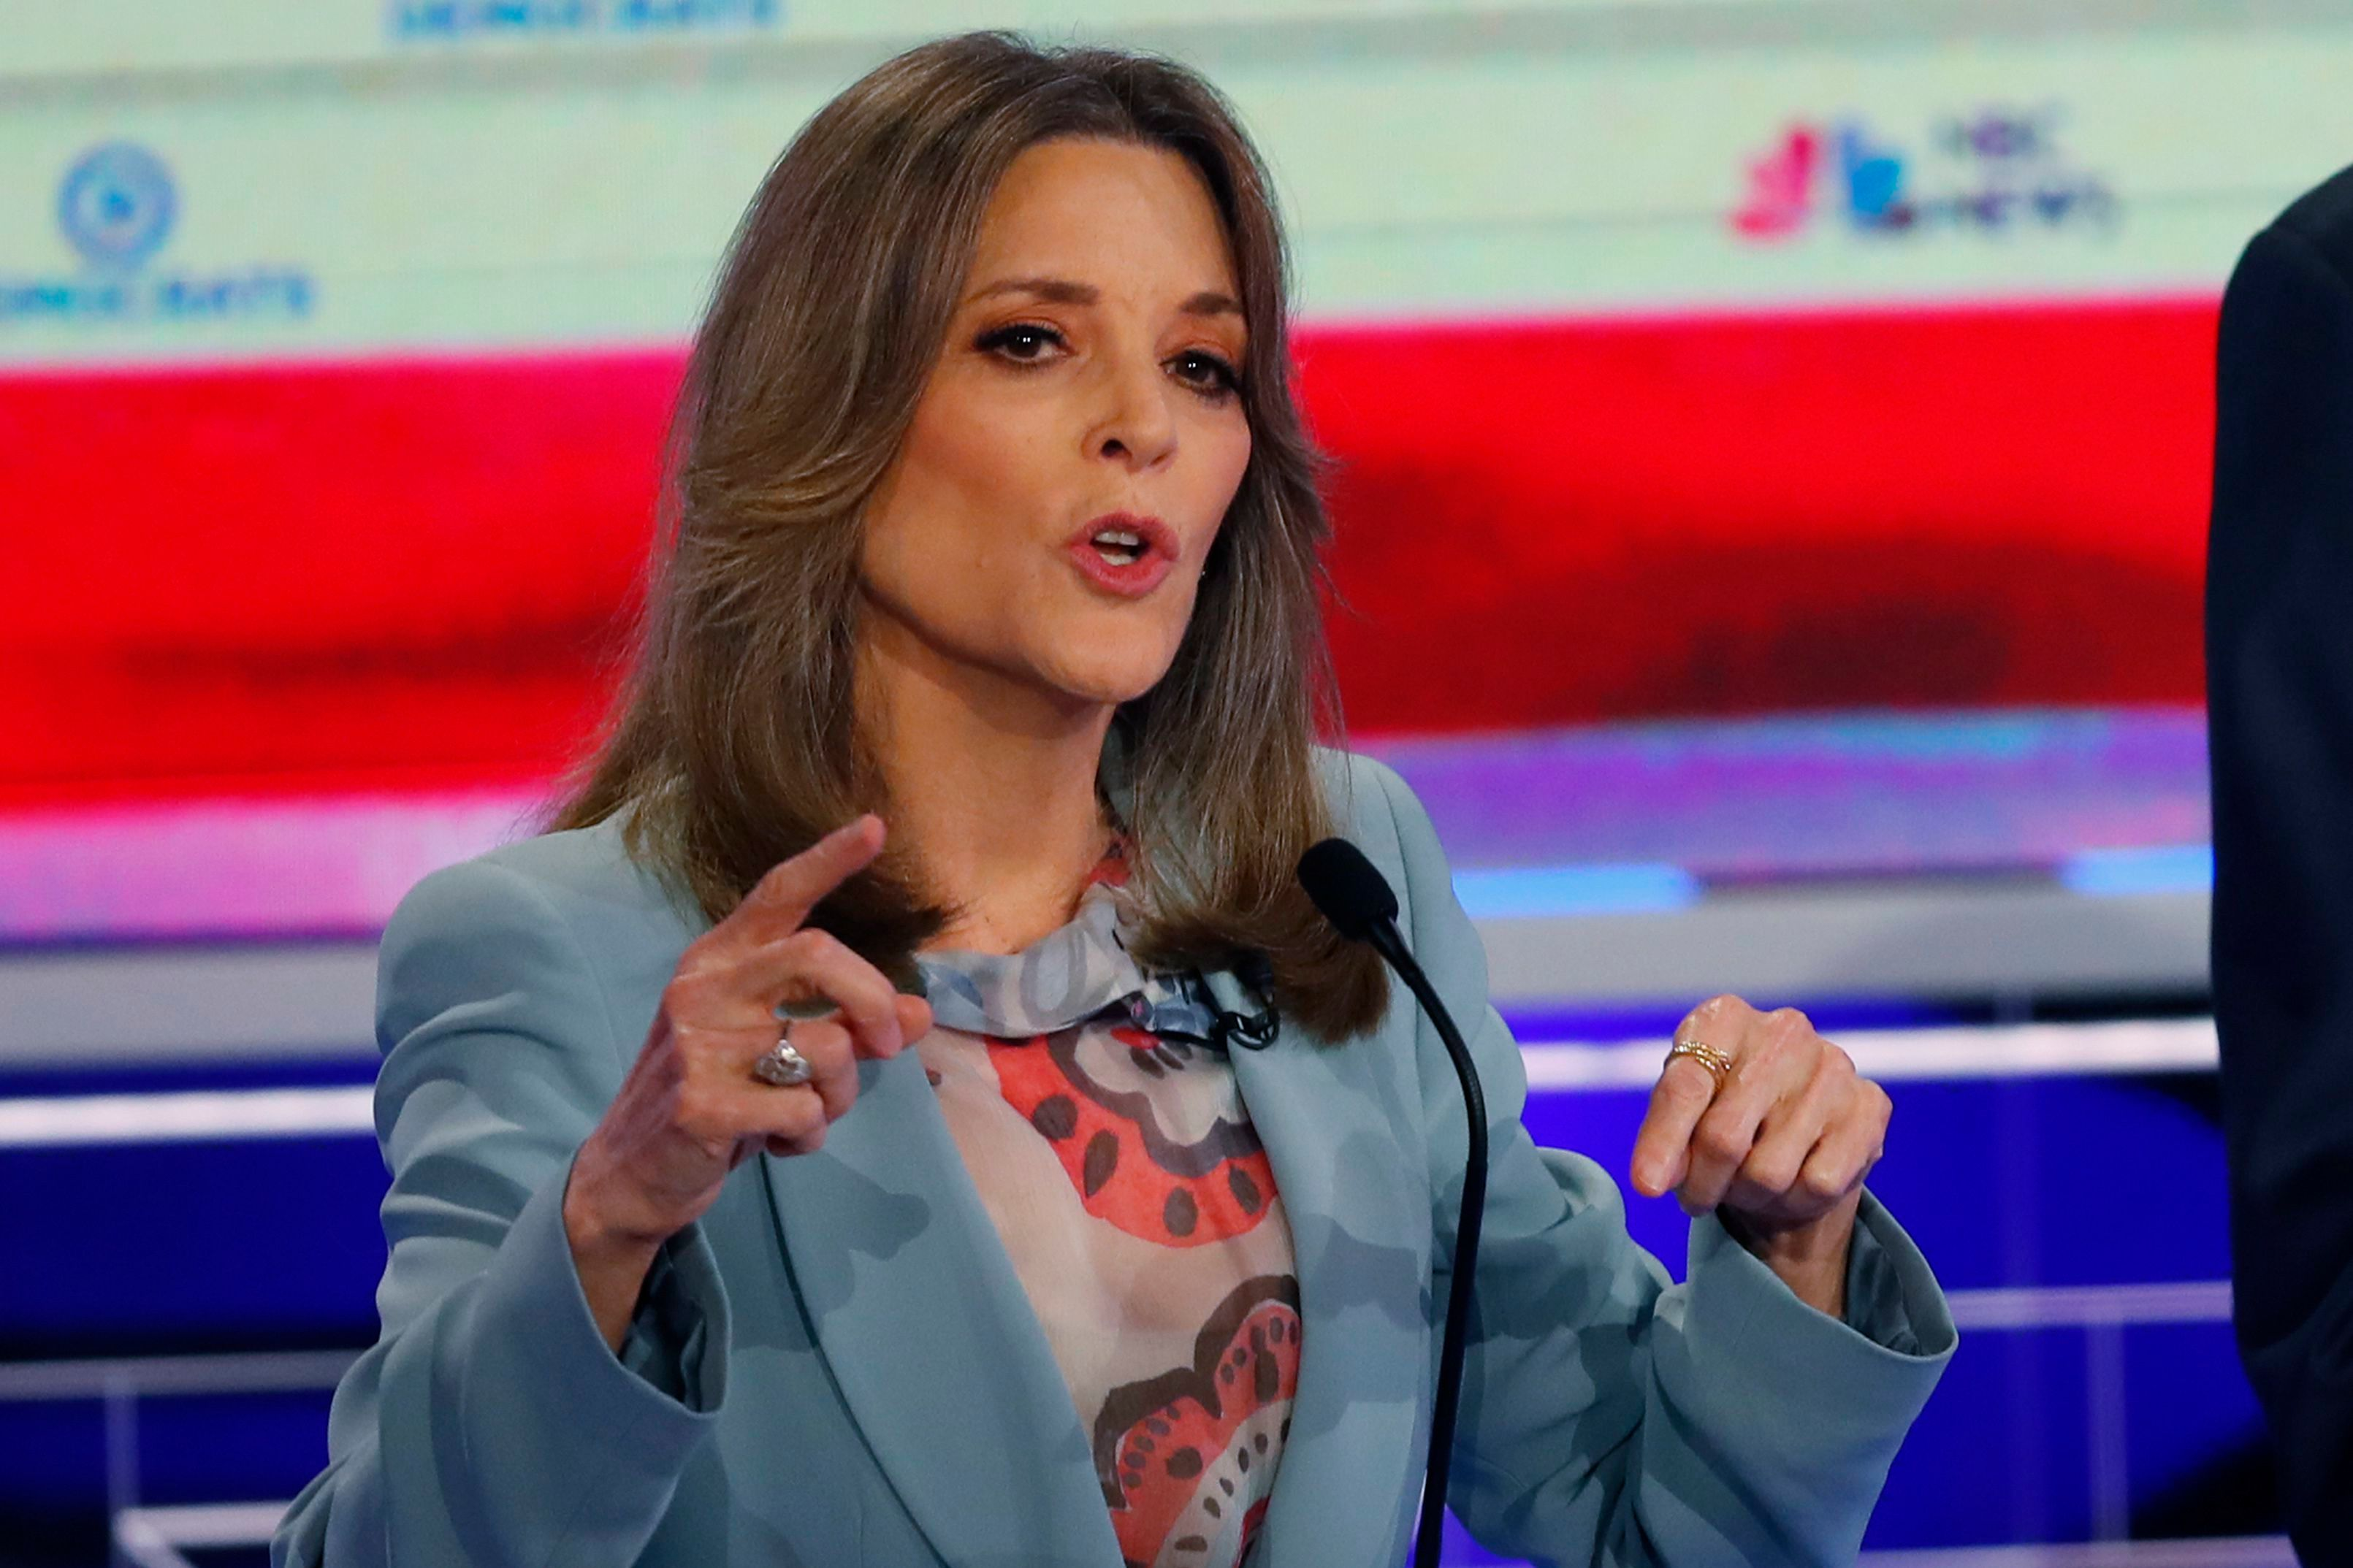 Democratic presidential candidate author Marianne Williamson speaks during the Democratic primary debate hosted by NBC News at the Adrienne Arsht Center for the Performing Arts, in MiamiElection 2020 Debate, Miami, USA - 27 Jun 2019